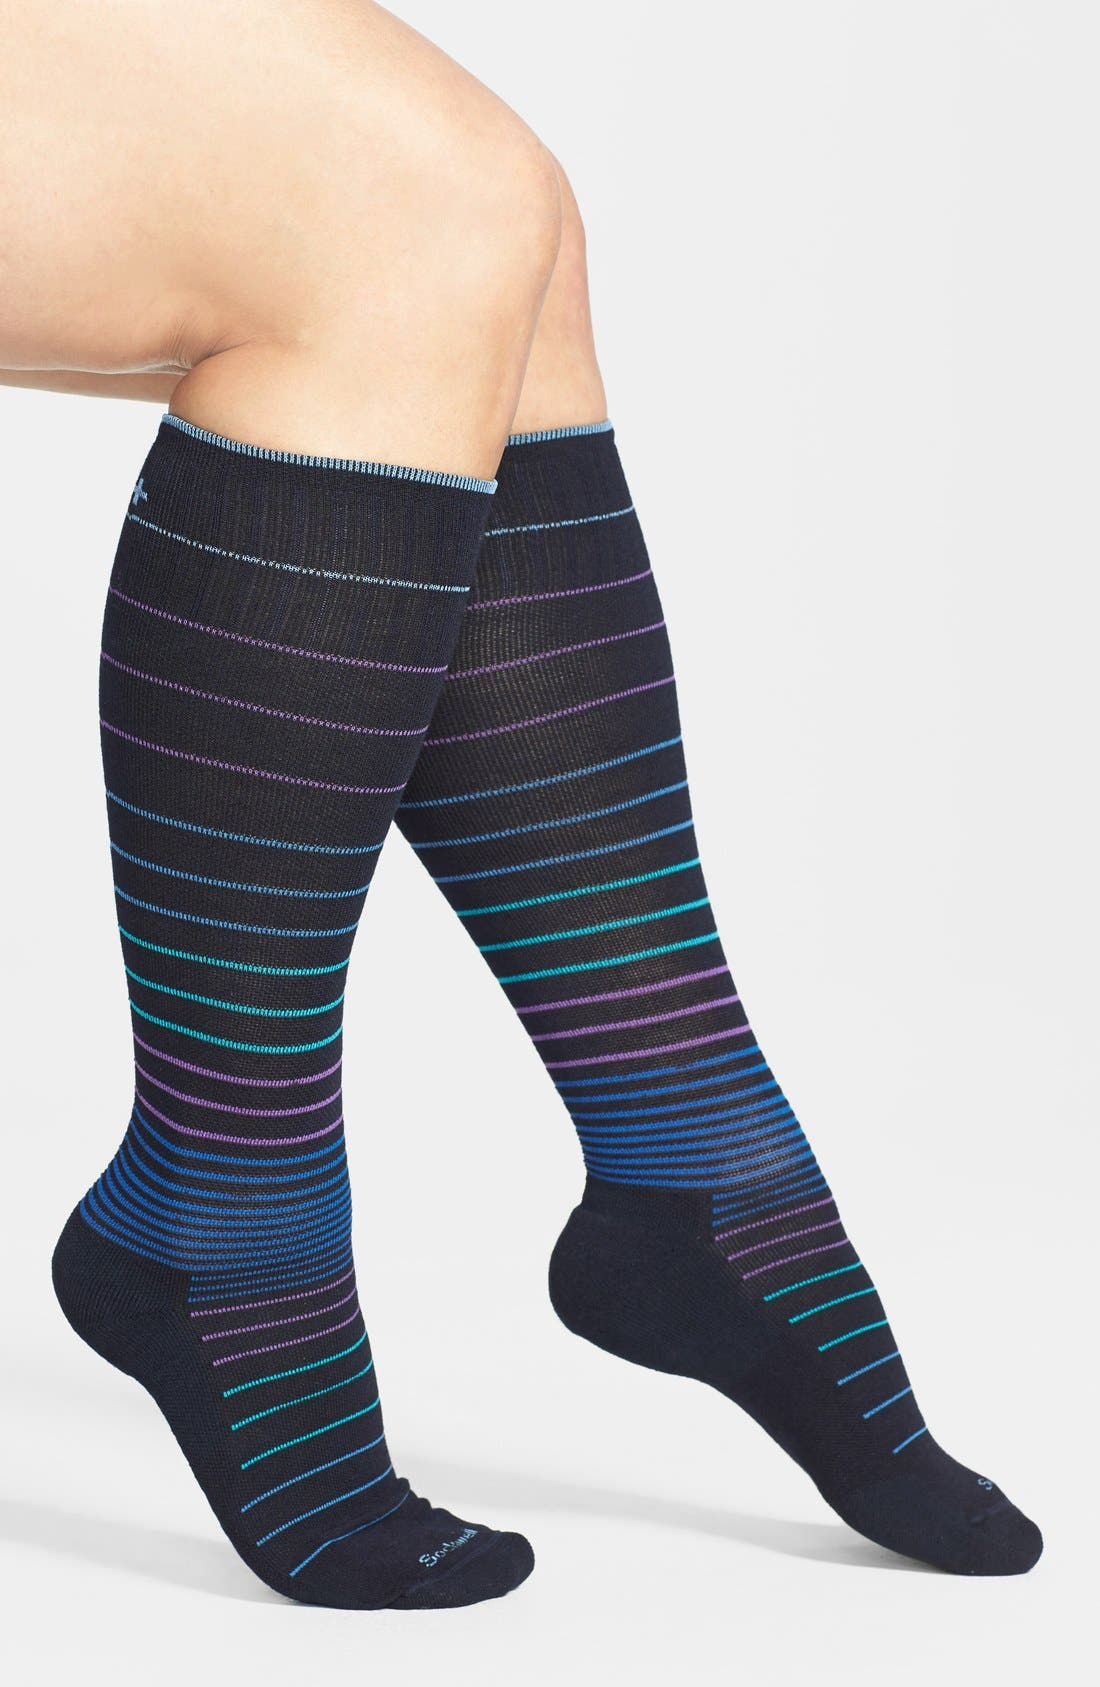 Circulator Compression Socks,                             Main thumbnail 1, color,                             NAVY BLACK/ BLUE STRIPES